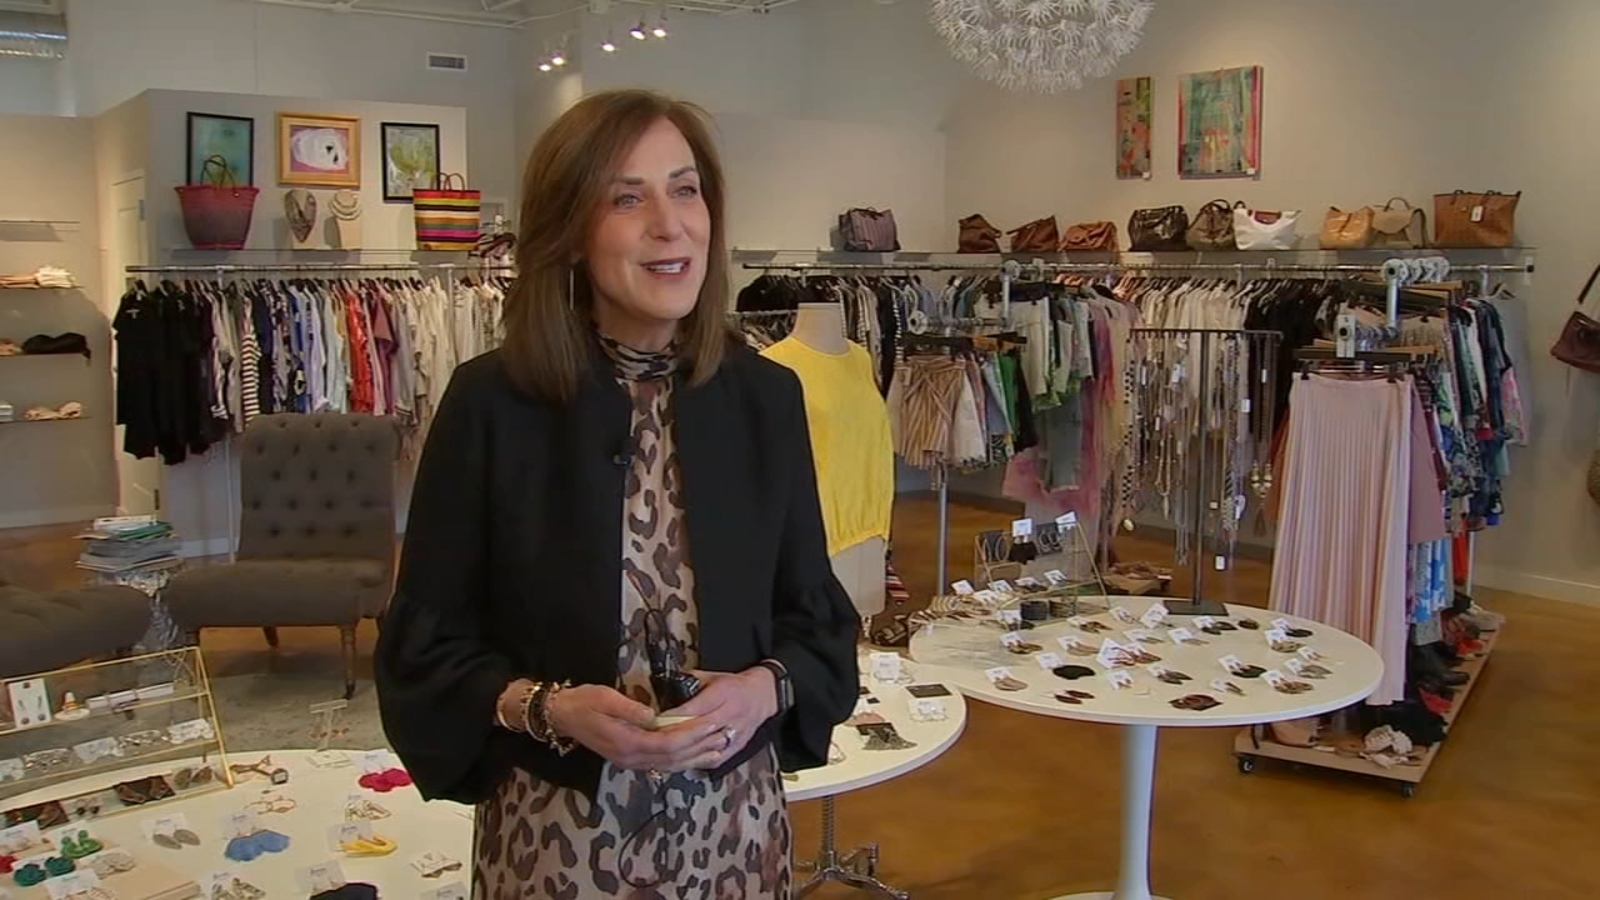 Now Open Dress Raleigh S High End Consignment Store Offers Dress Rental Abc11 Raleigh Durham